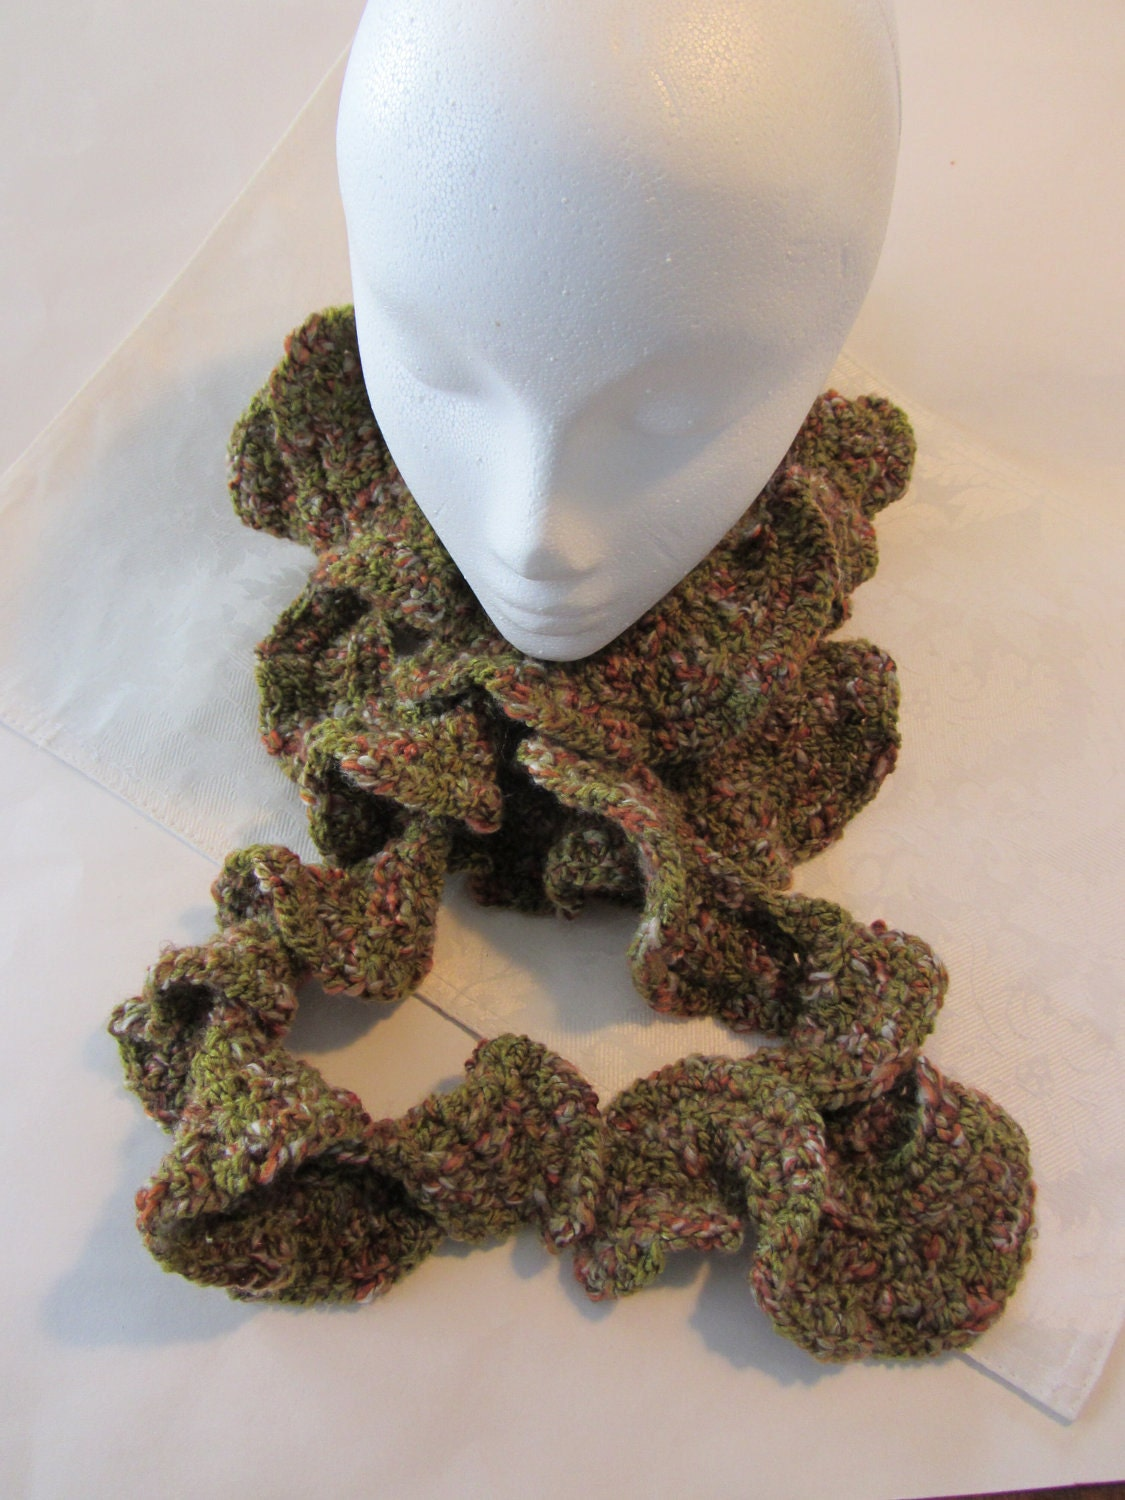 Crochet Ruffle Scarf Multicolored Half Price Sale by RobertaAnne Crochet Scarves For Sale